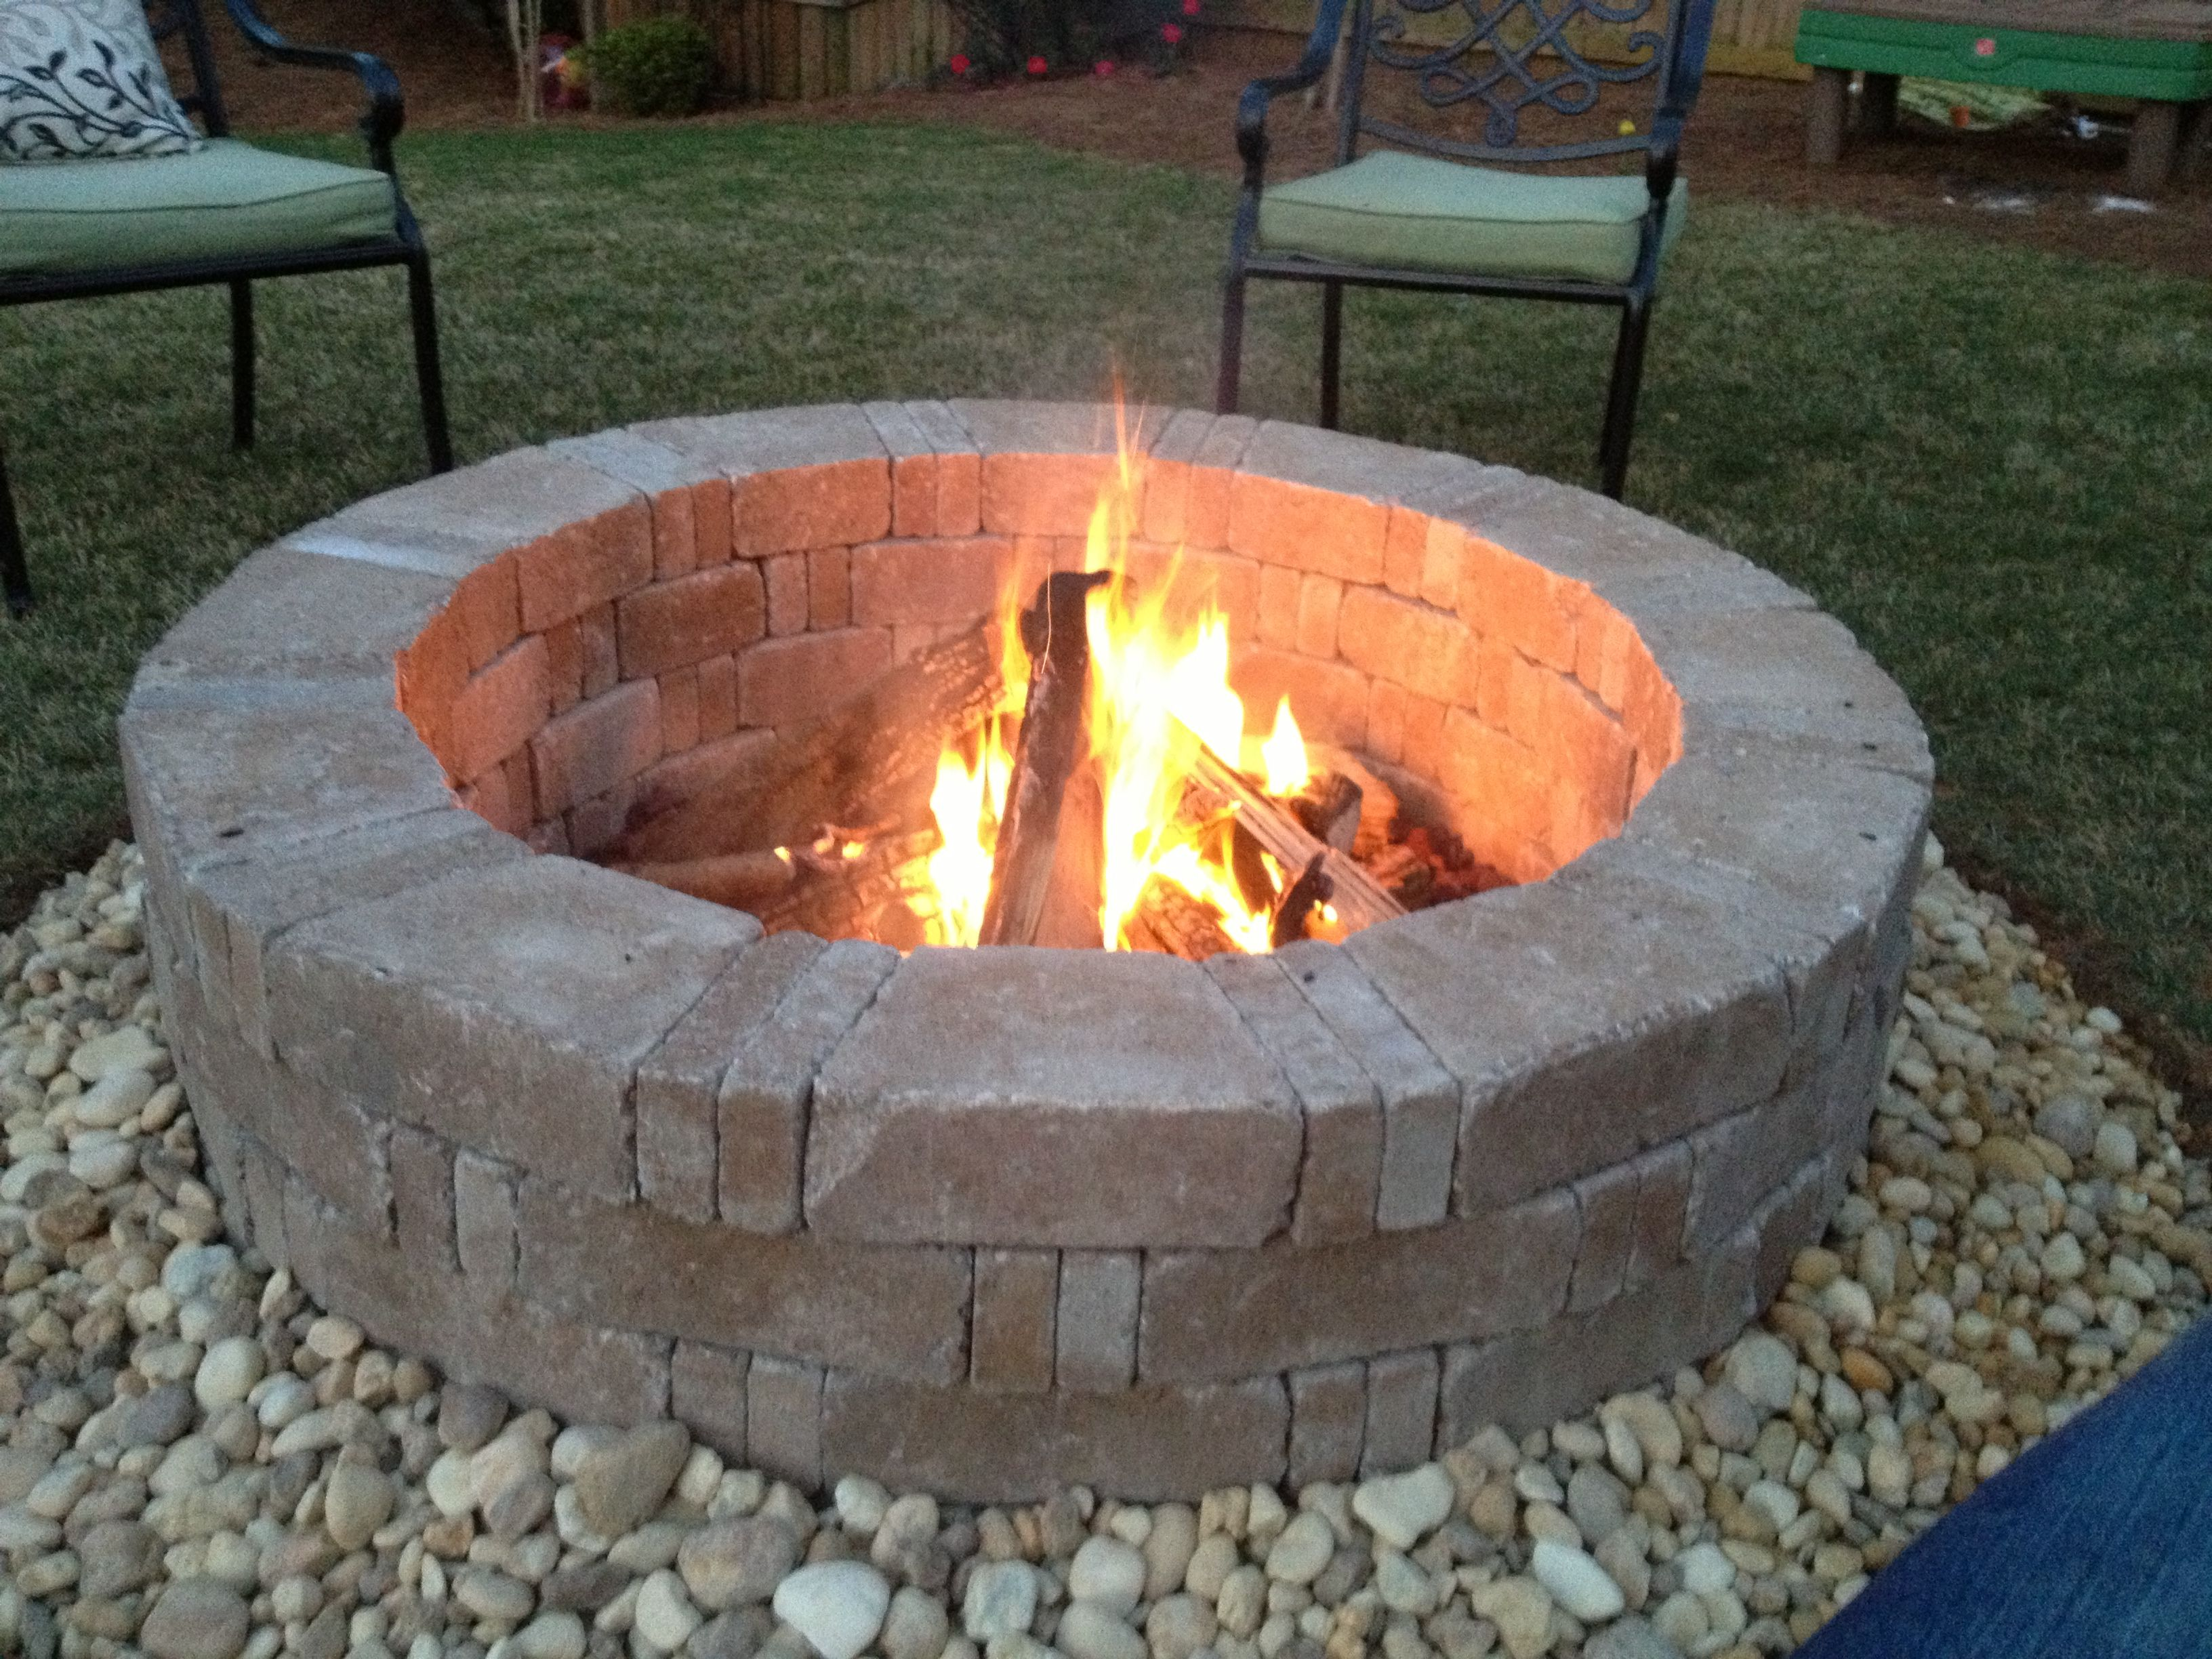 Rumblestone Firepit With River Stone Surround And Red Lava Rock Center Fire Pit With Rocks Fire Pit Fire Pit Lava Rocks